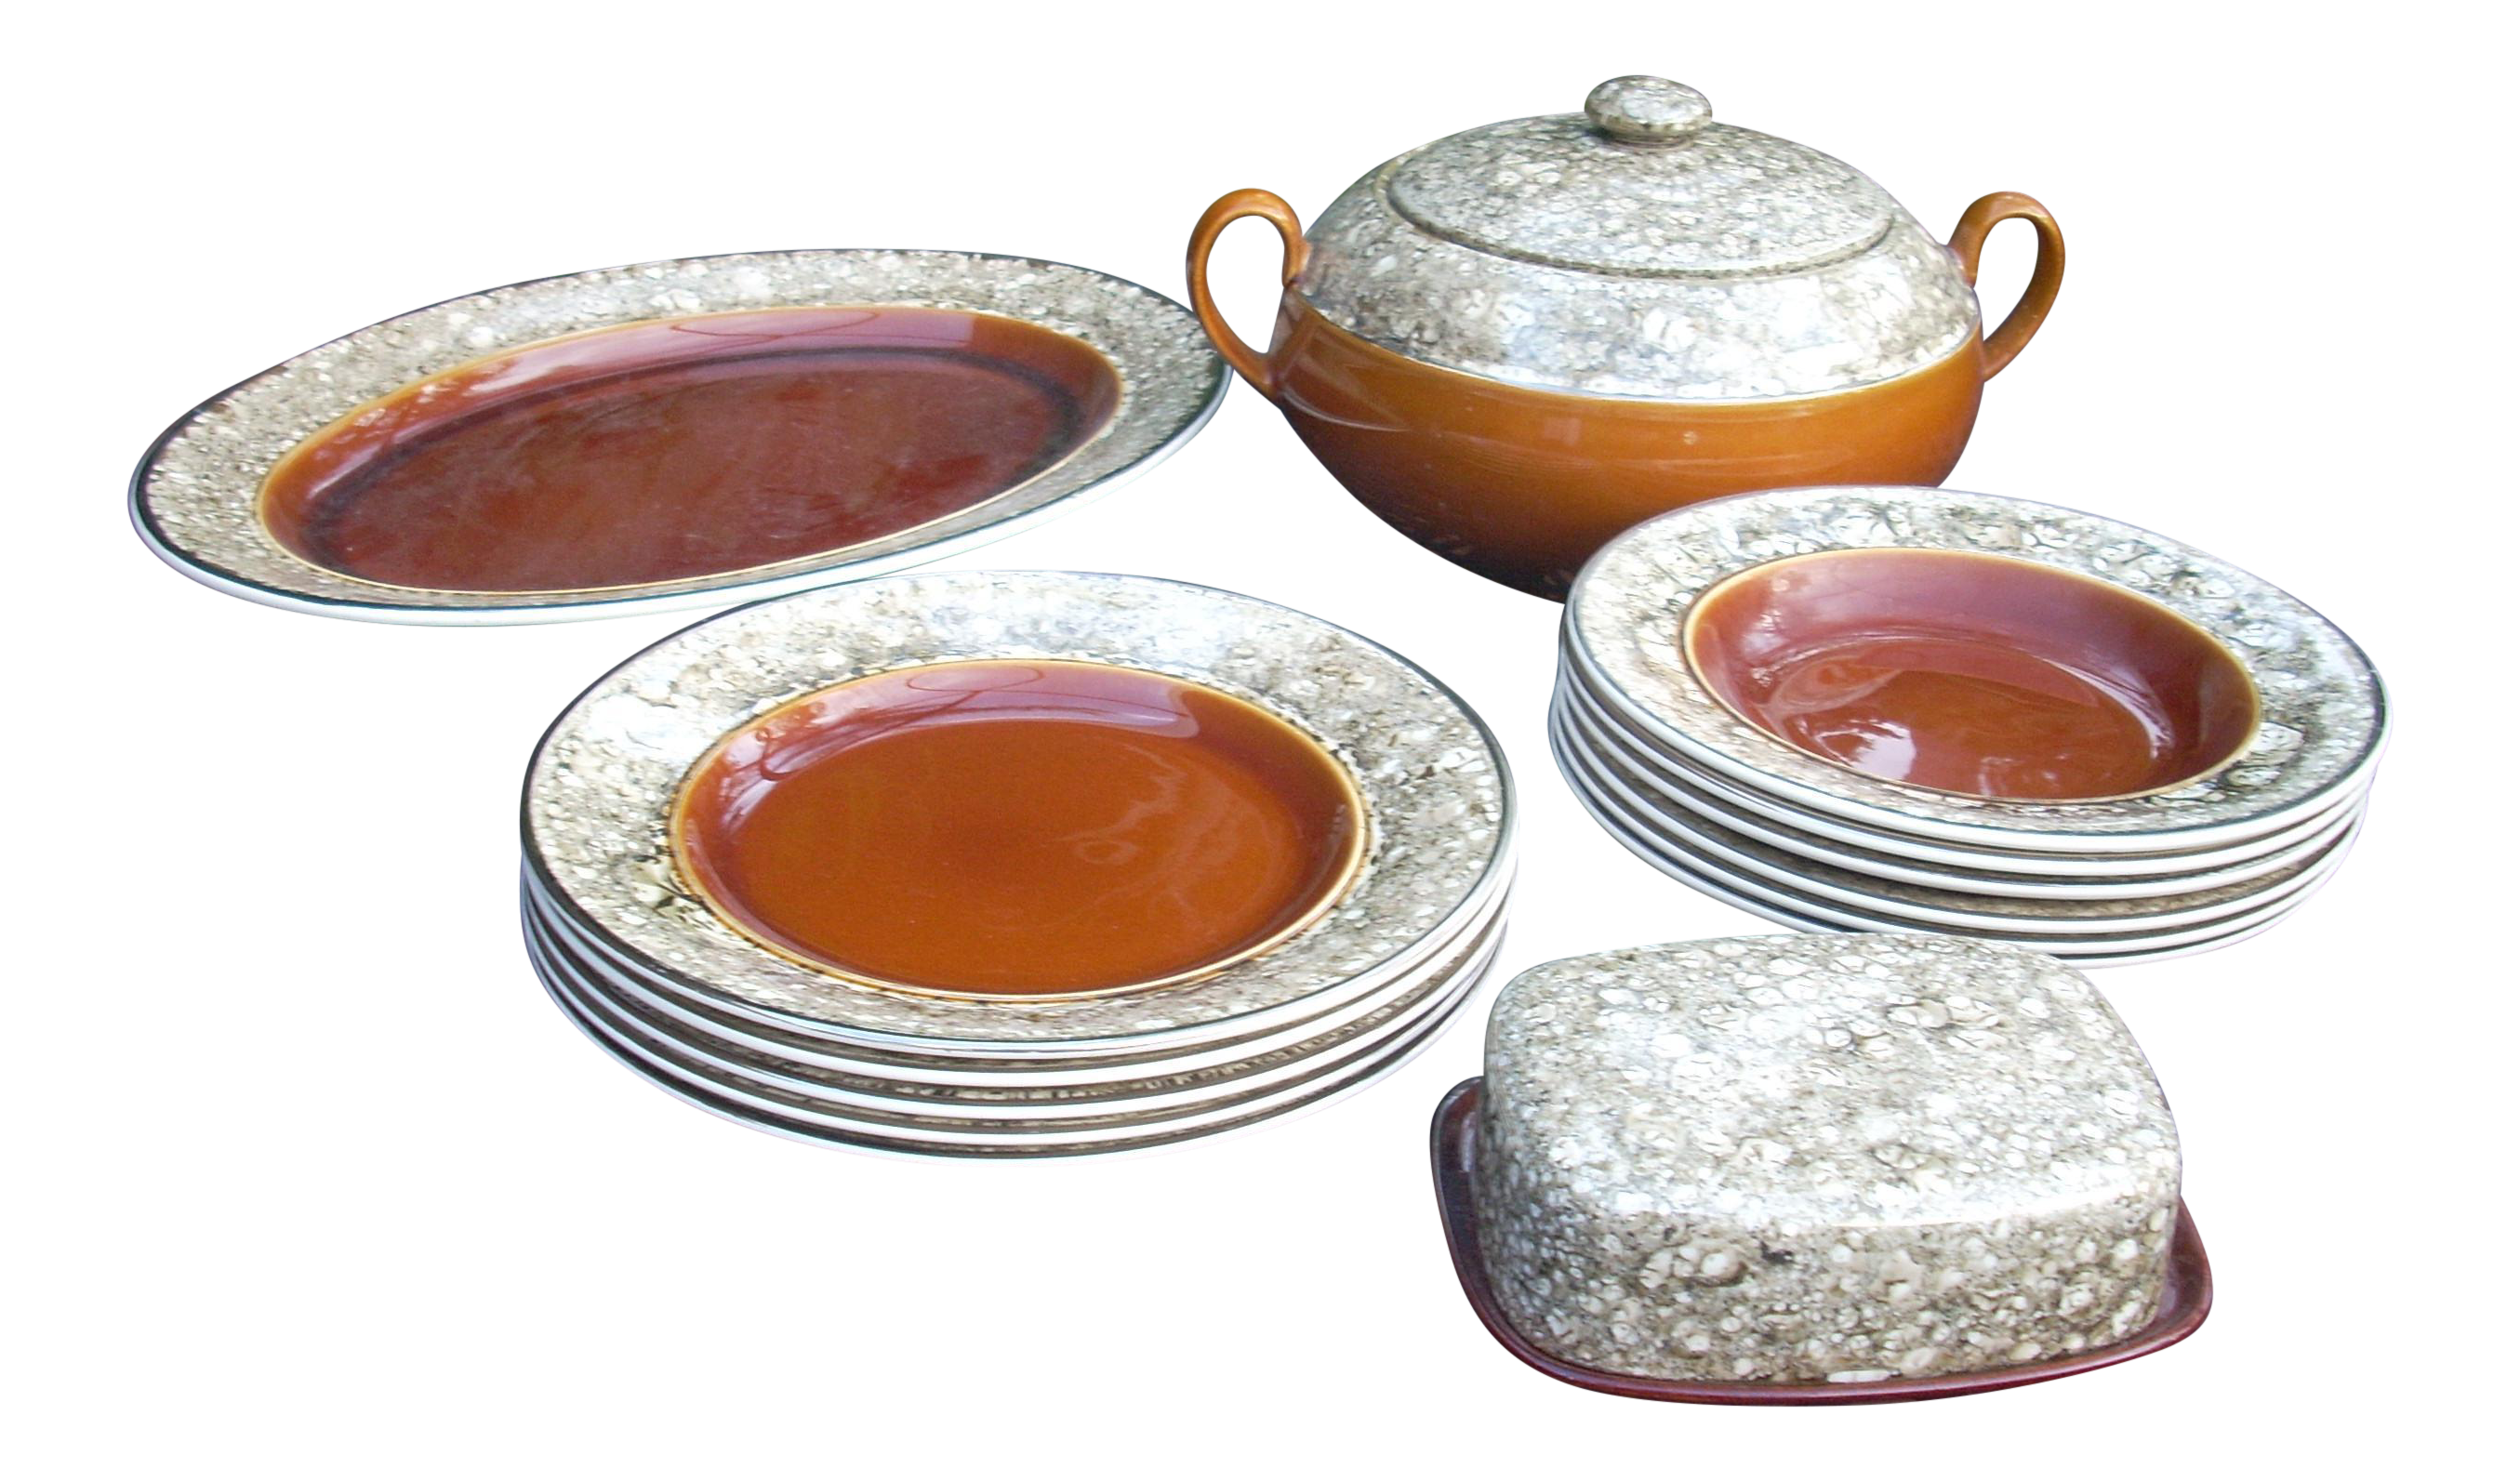 Lalins Country French Dinnerware - 14 Pieces - Image 1 of 5  sc 1 st  Chairish & Lalins Country French Dinnerware - 14 Pieces | Chairish